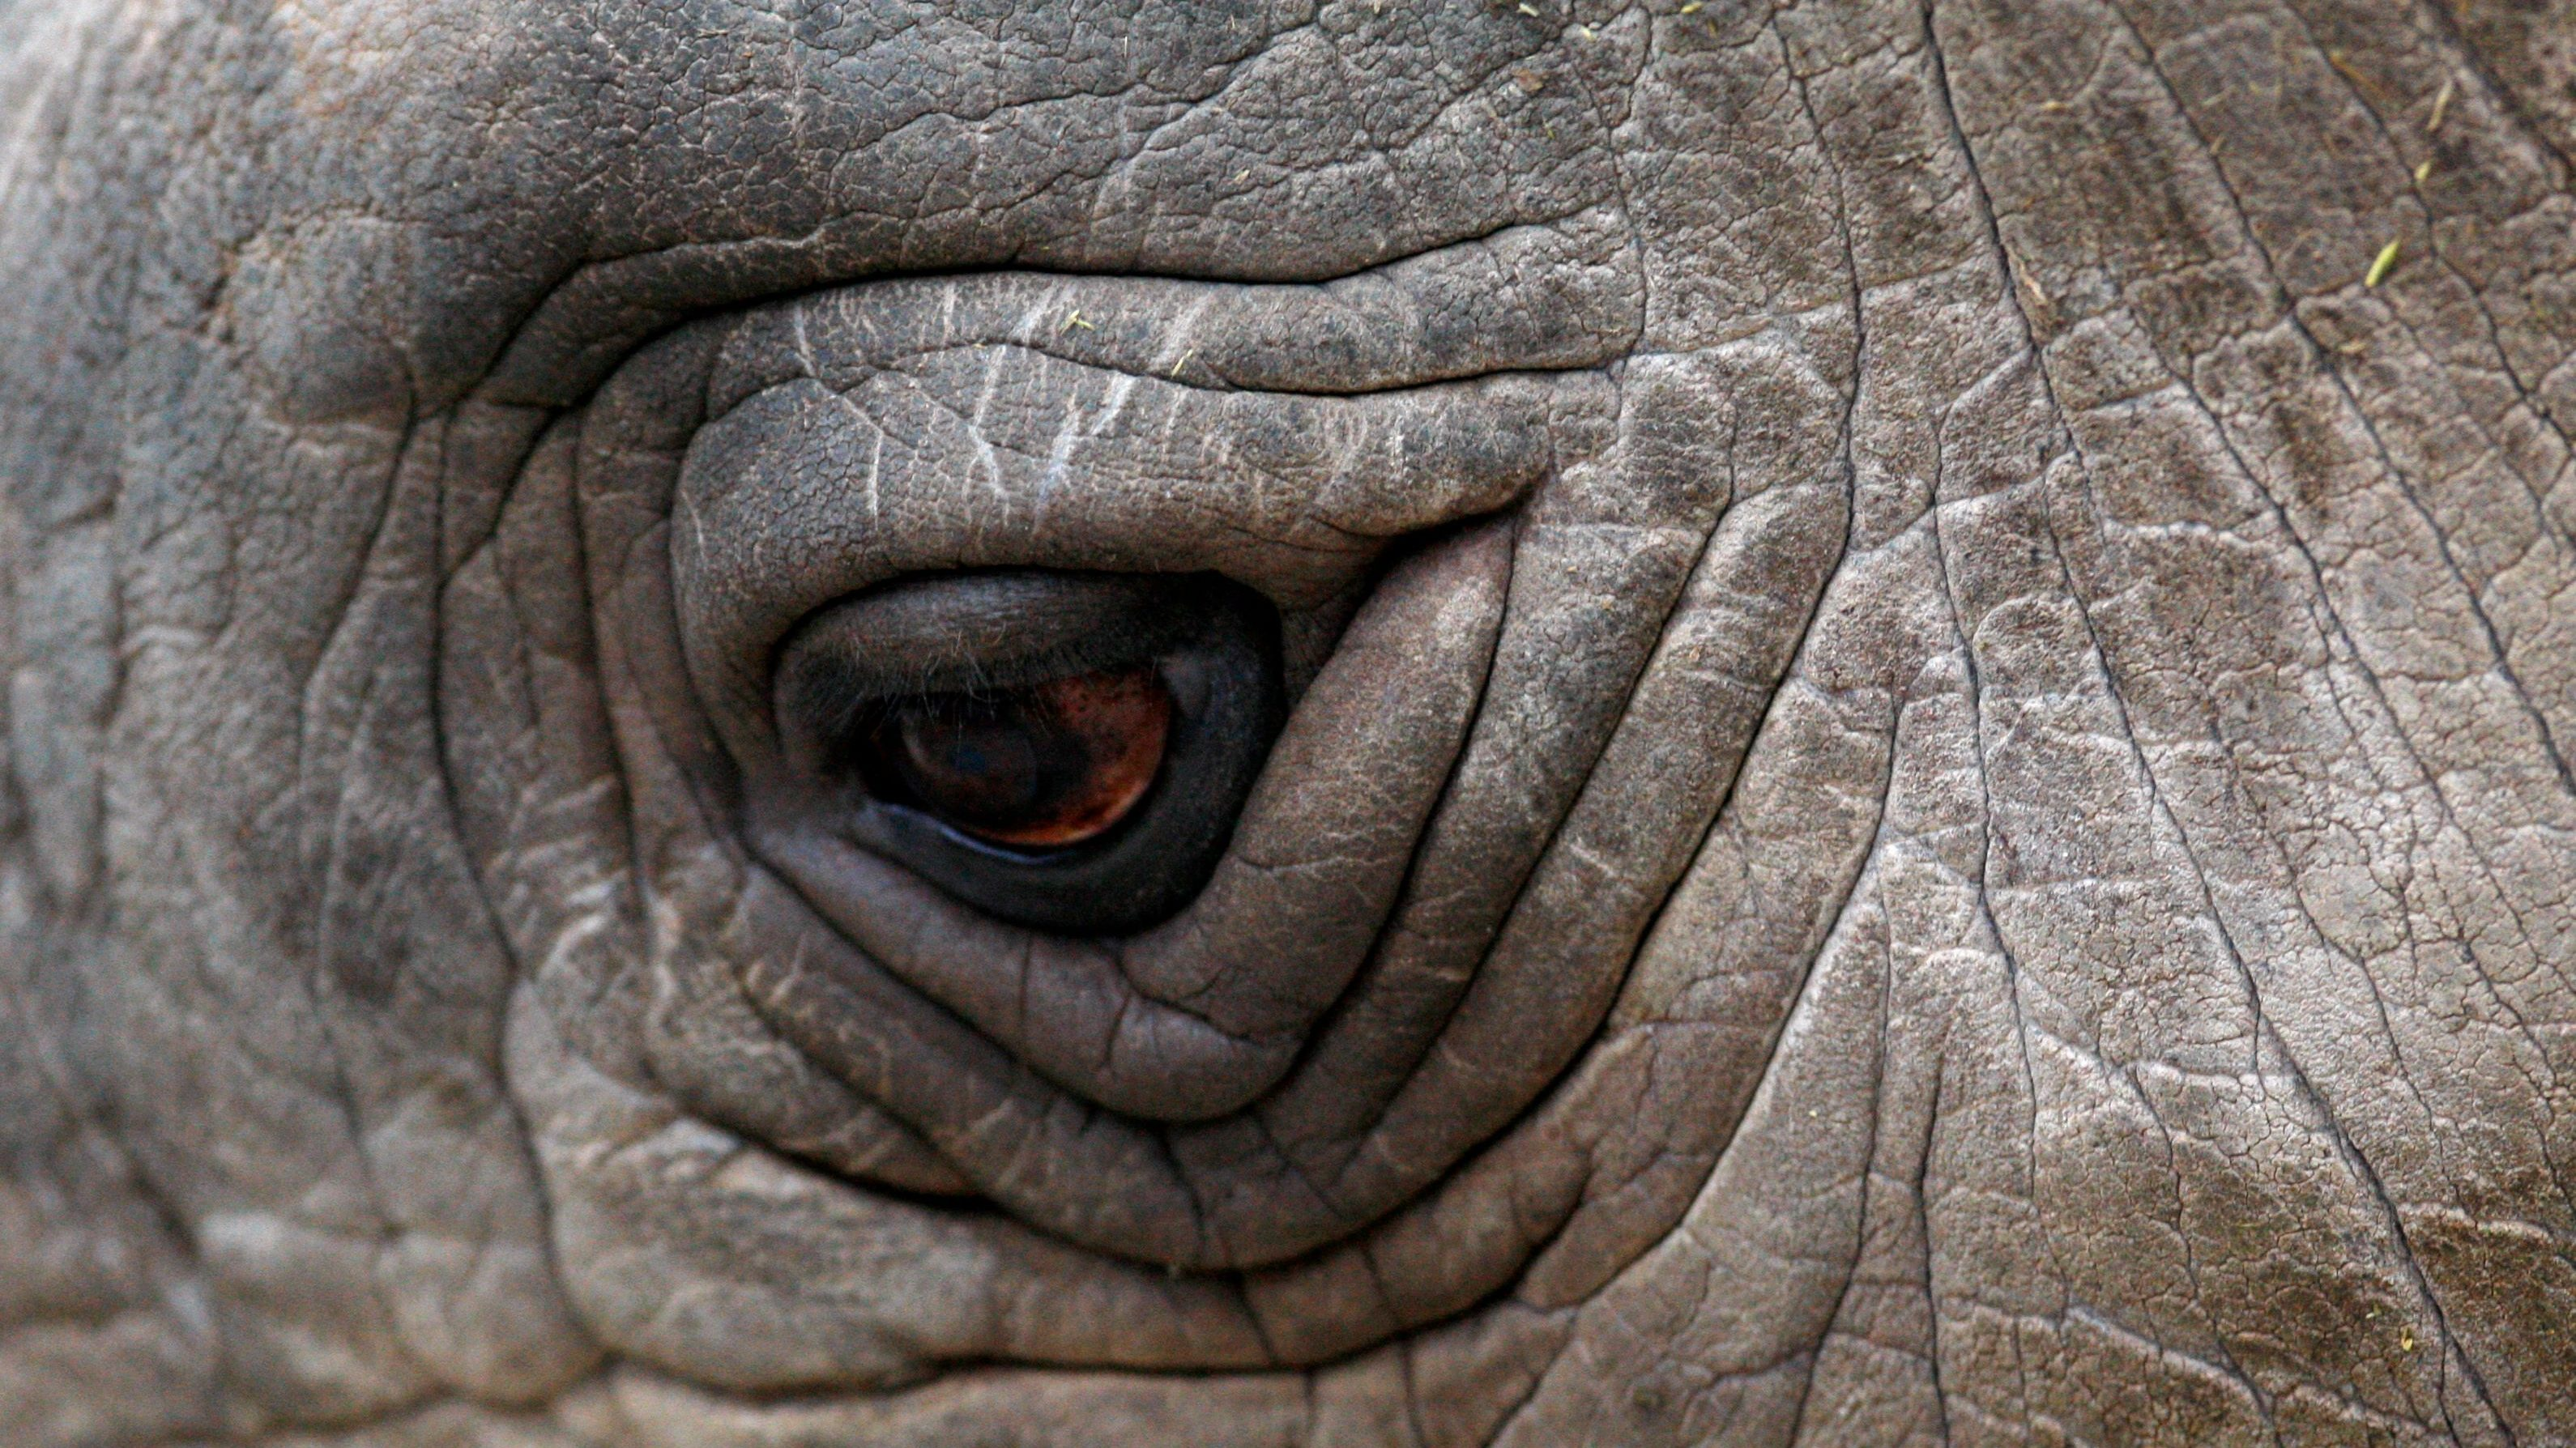 A close-up view of an eye of a Northern White Rhino named Sudan at the zoo in Dvur Kralove nad Labem in the Czech Republic December 16, 2009. Eight white rhinos live in captivity - six at the zoo in Dvur Kralove and two in the San Diego zoo - and experts believe they are among the last of the species left on the planet, as the rest of the population were killed by war and the loss of their habitat in Africa. Officials at the Czech zoo said four of the rhinos will be moved to the Ol Pejeta reservation in Kenya on Saturday in an effort to conserve the population.